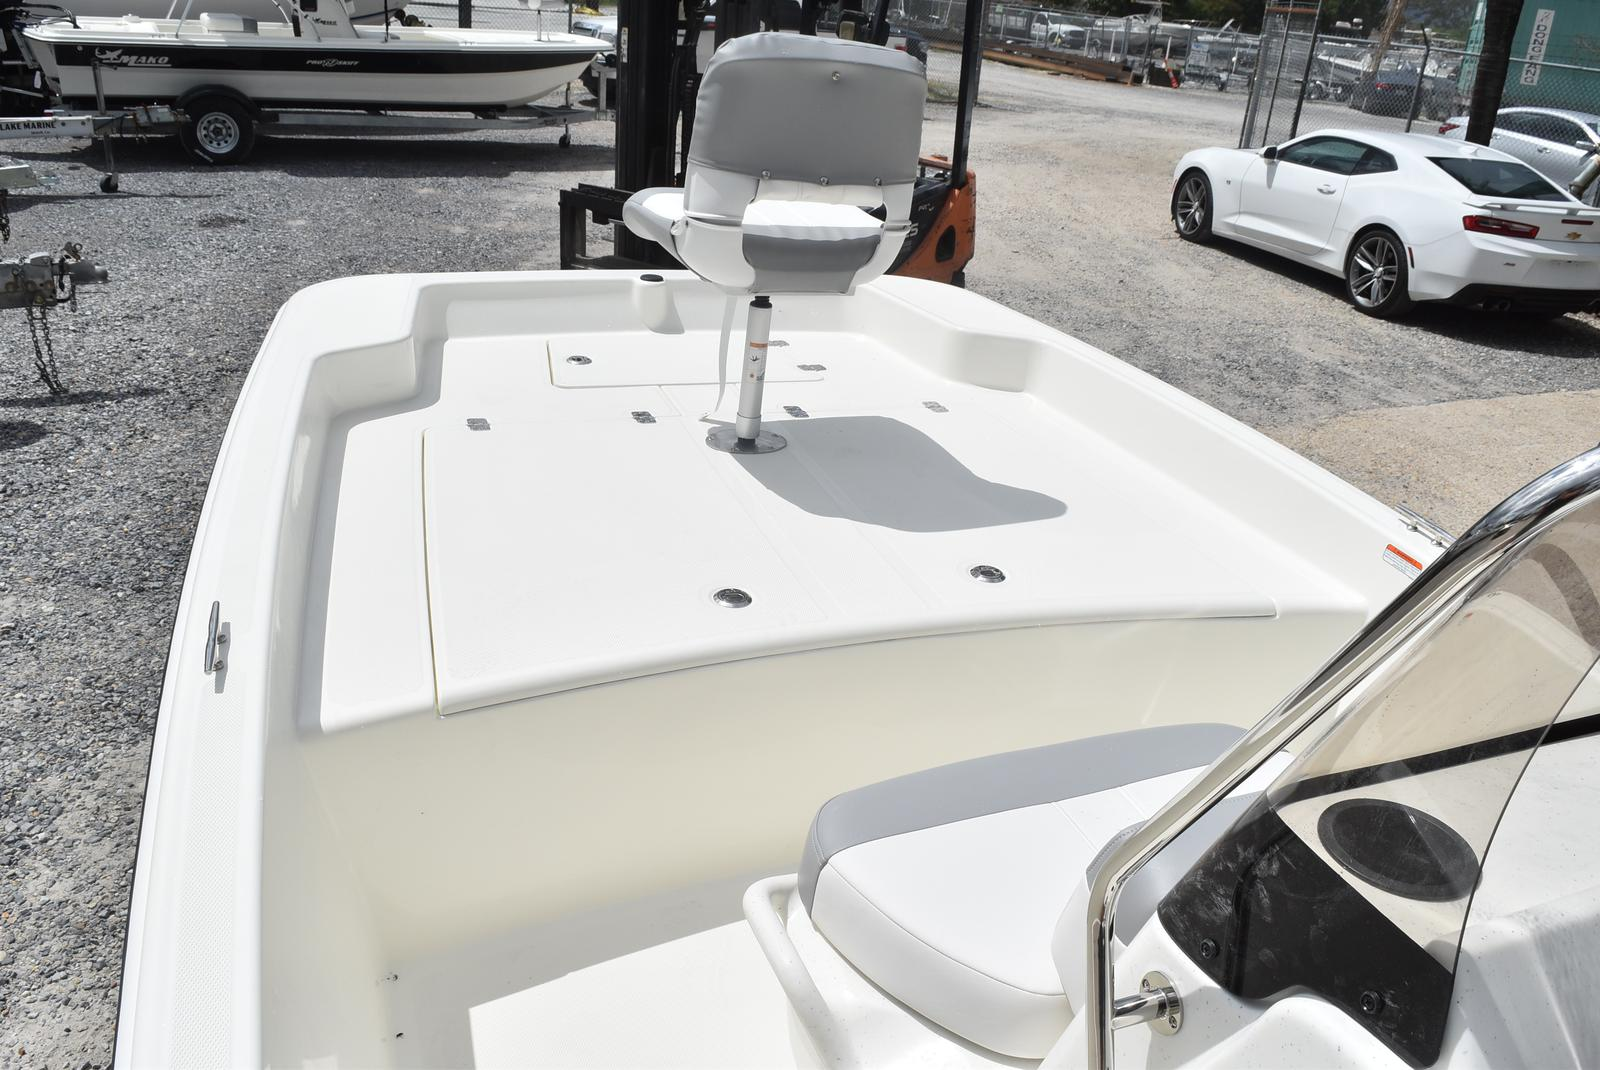 2020 Mako boat for sale, model of the boat is Pro Skiff 17, 75 ELPT & Image # 462 of 702